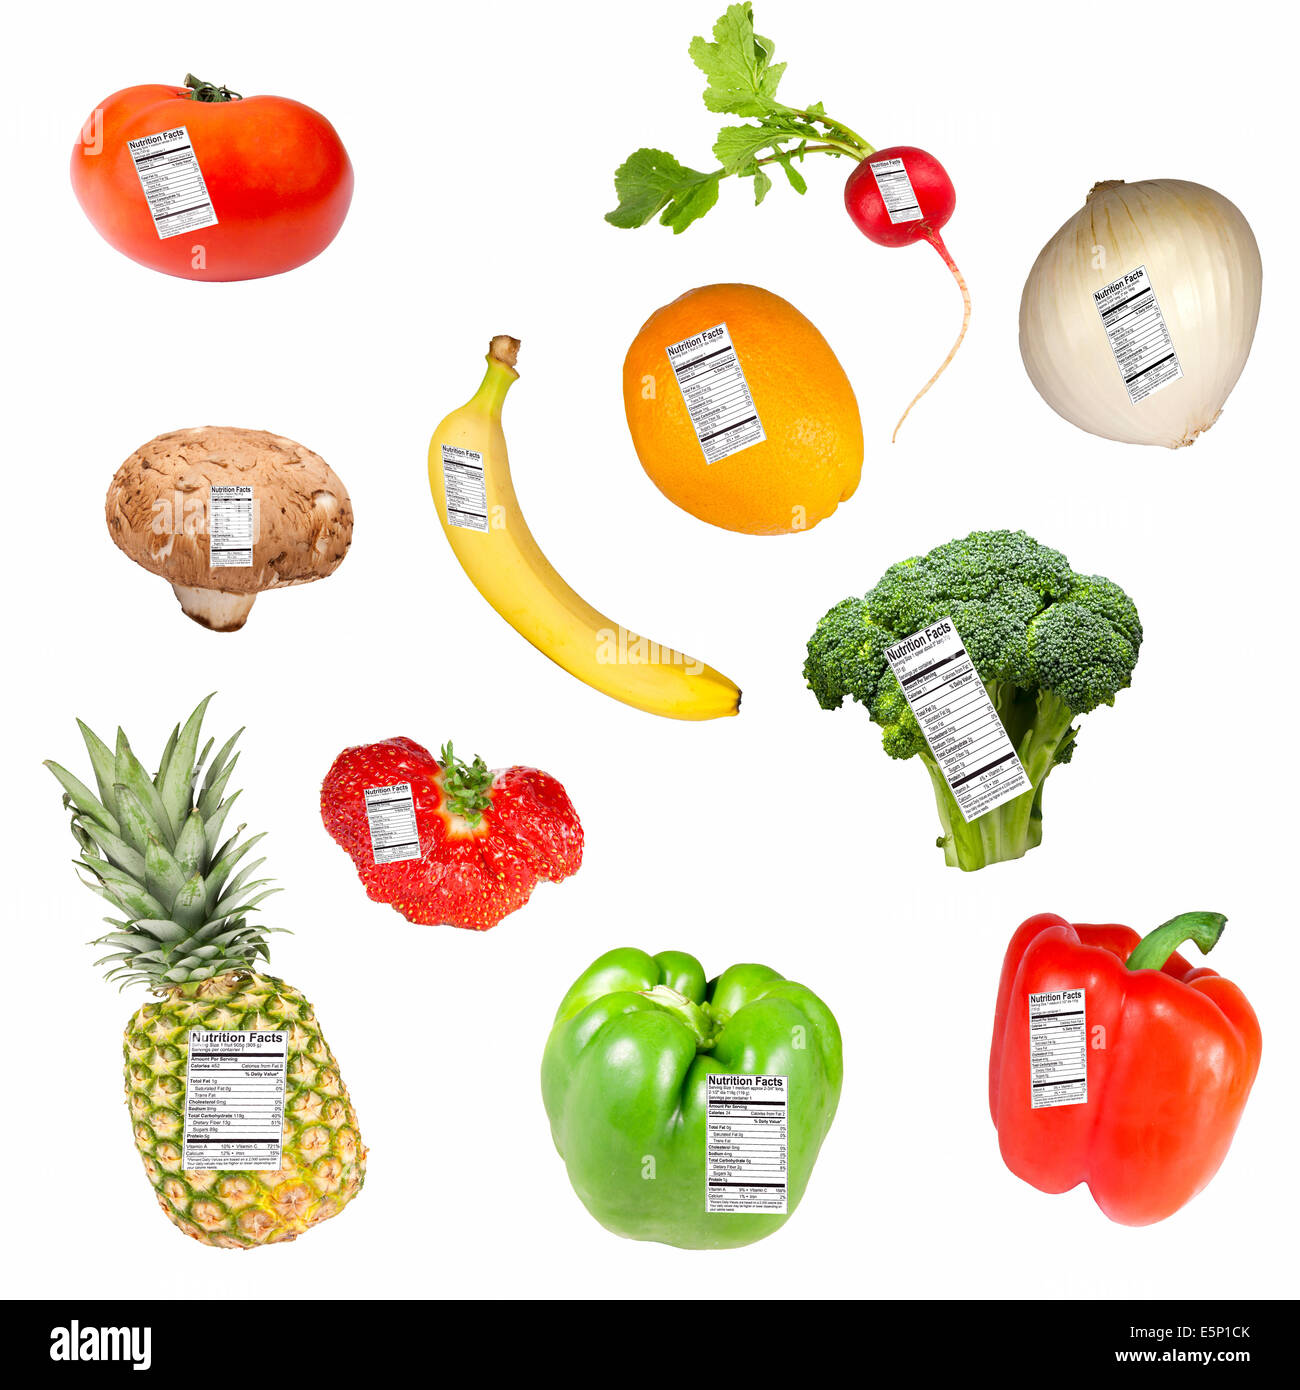 Nutritional Facts Of Vegetables And Fruits